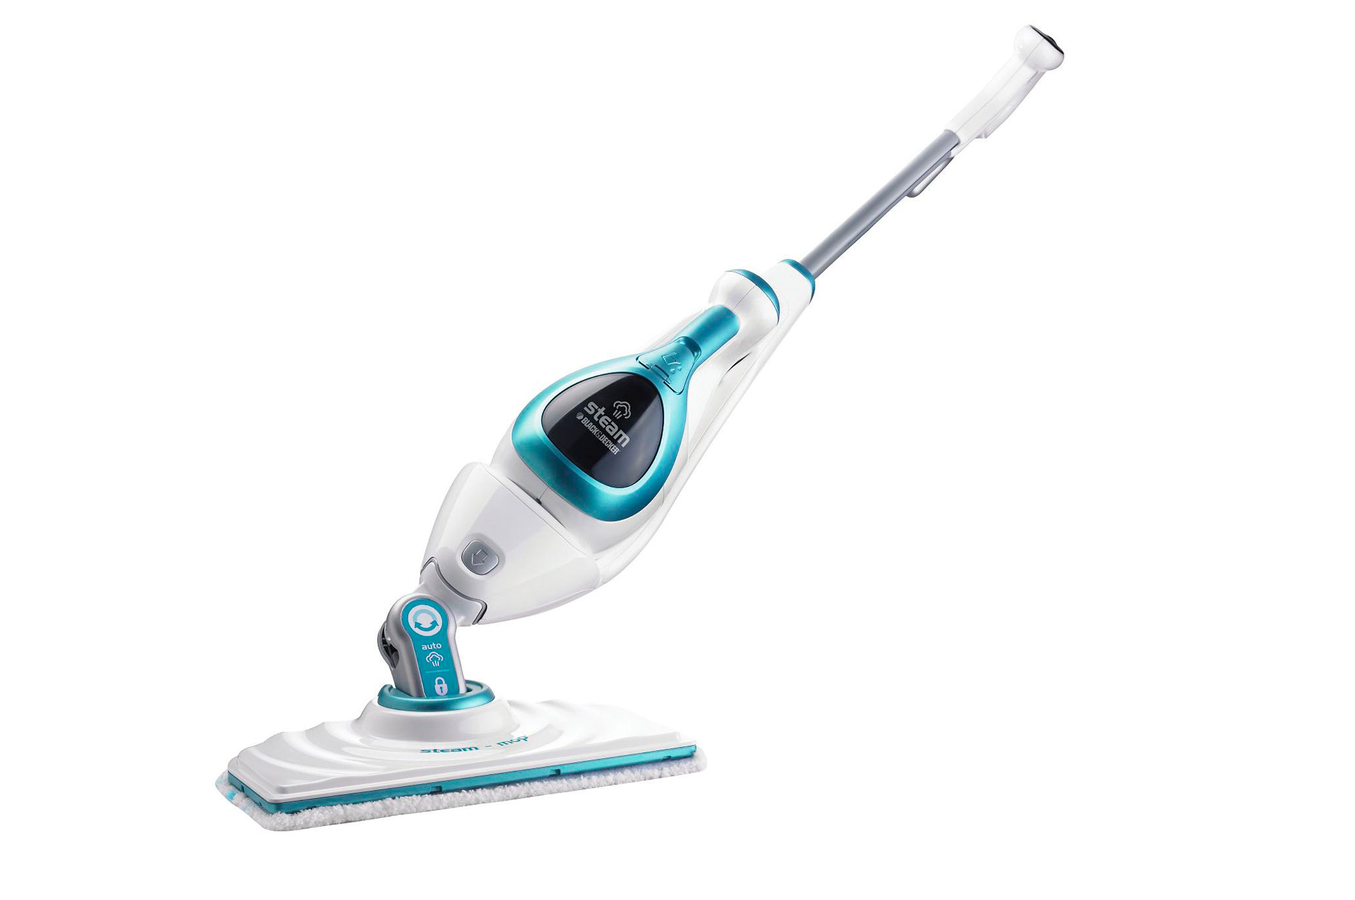 Nettoyeur Vapeur Black Decker Fsmh1621 Steam Mop Steammop 3721345 Darty